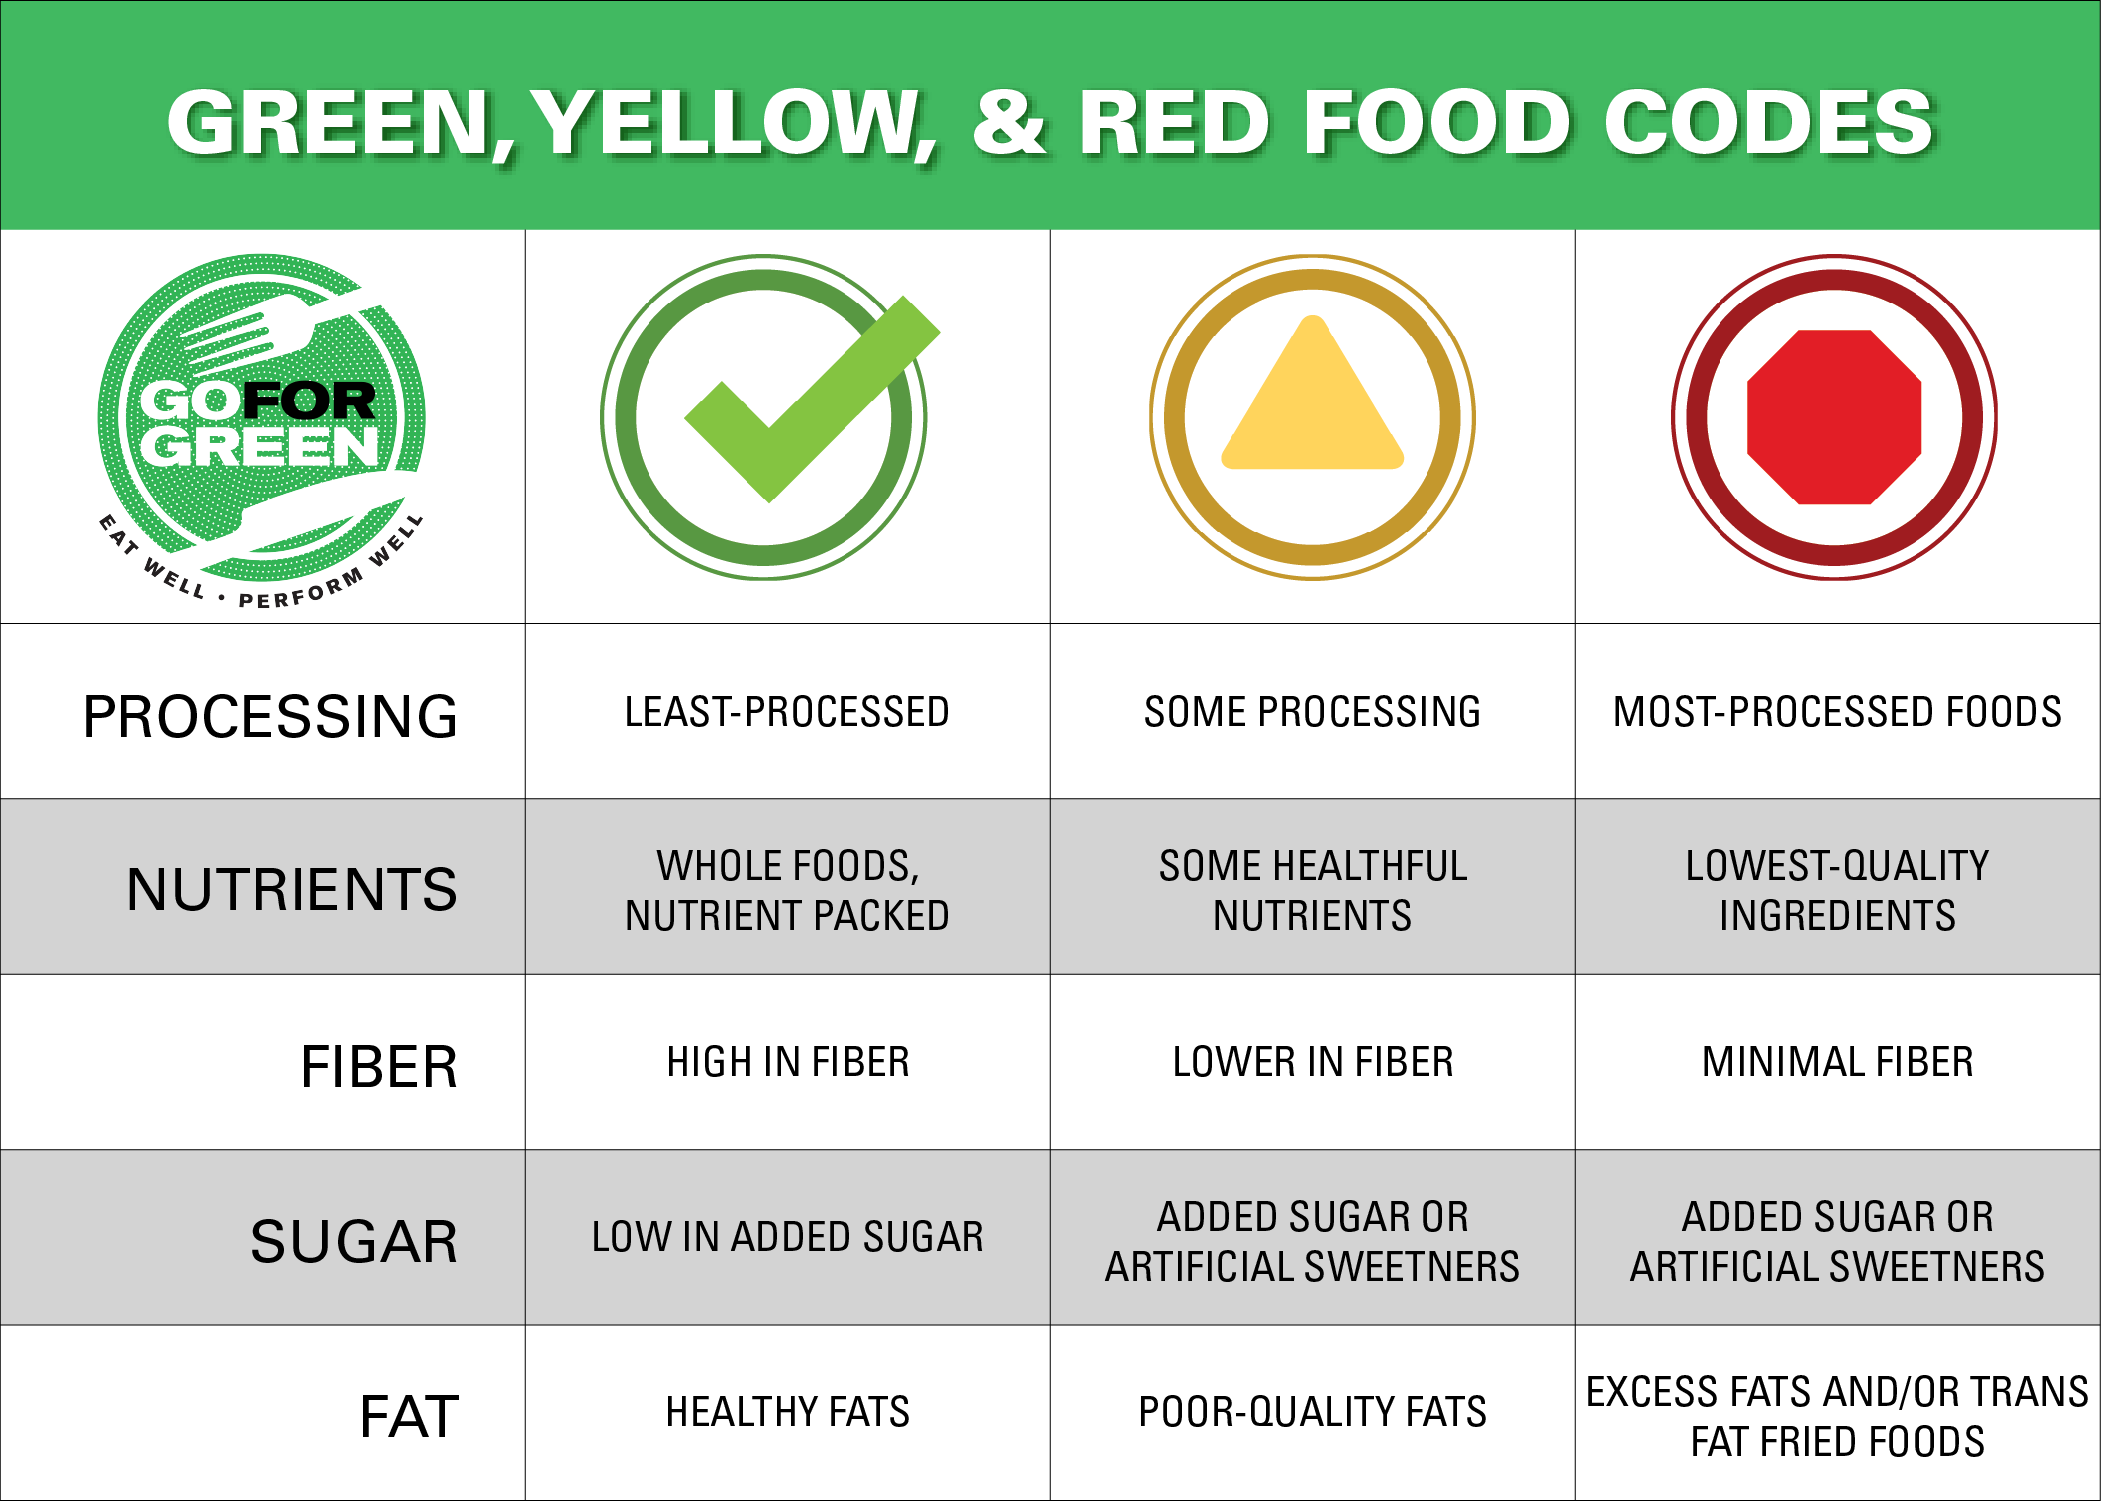 Green, Yellow, and Red Food Codes. See caption for text.